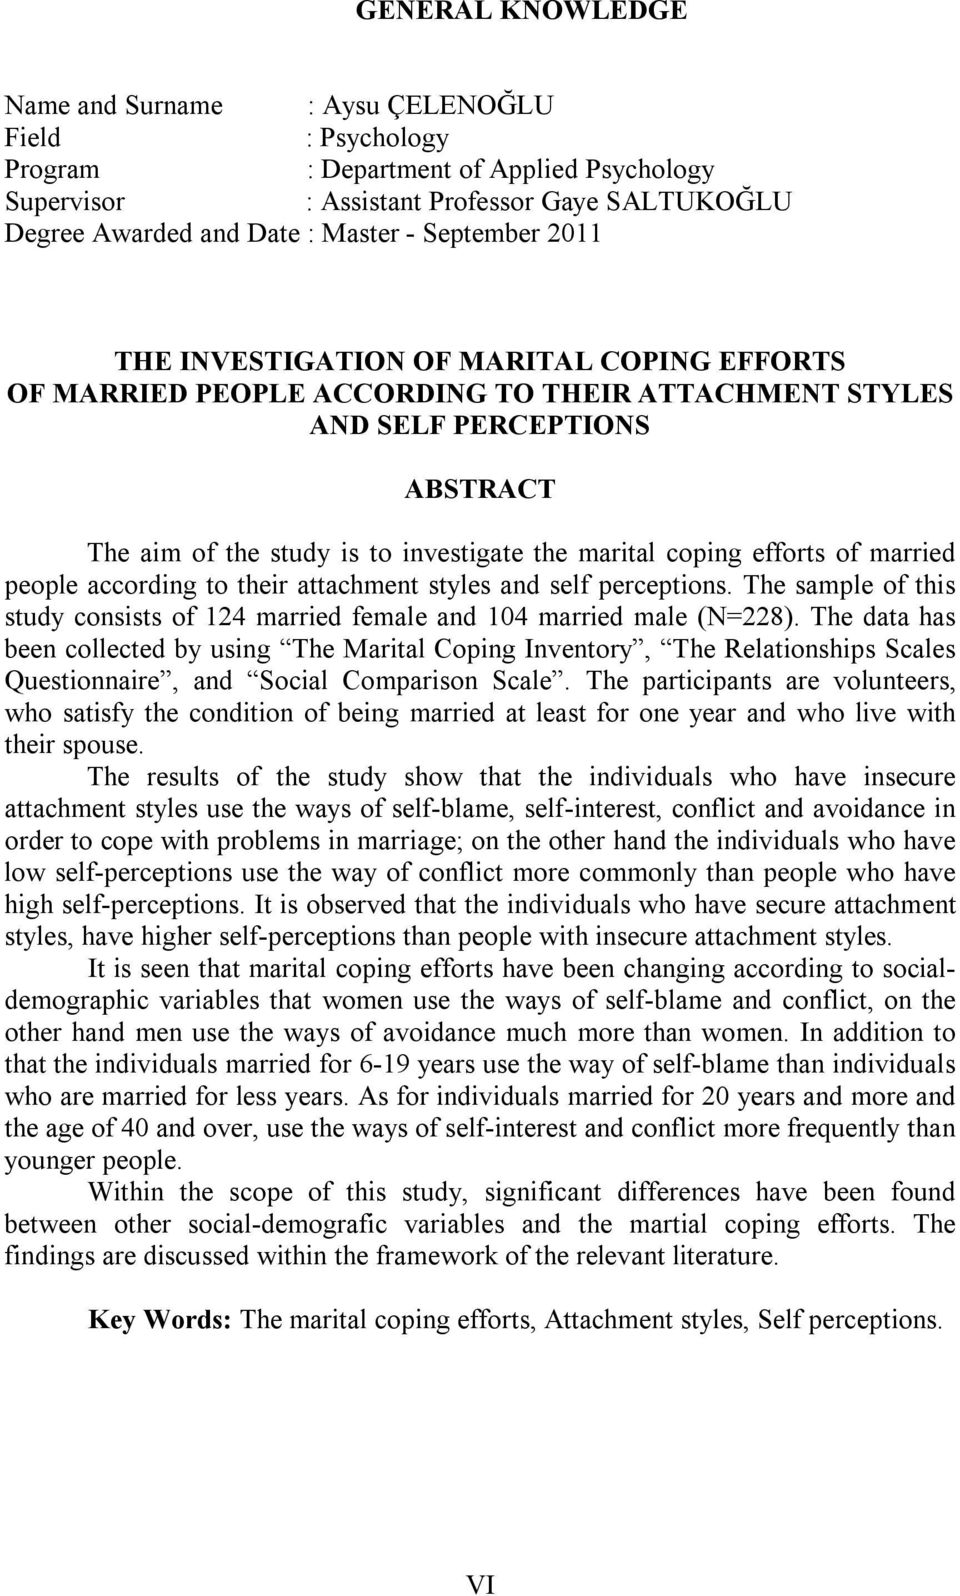 coping efforts of married people according to their attachment styles and self perceptions. The sample of this study consists of 124 married female and 104 married male (N=228).